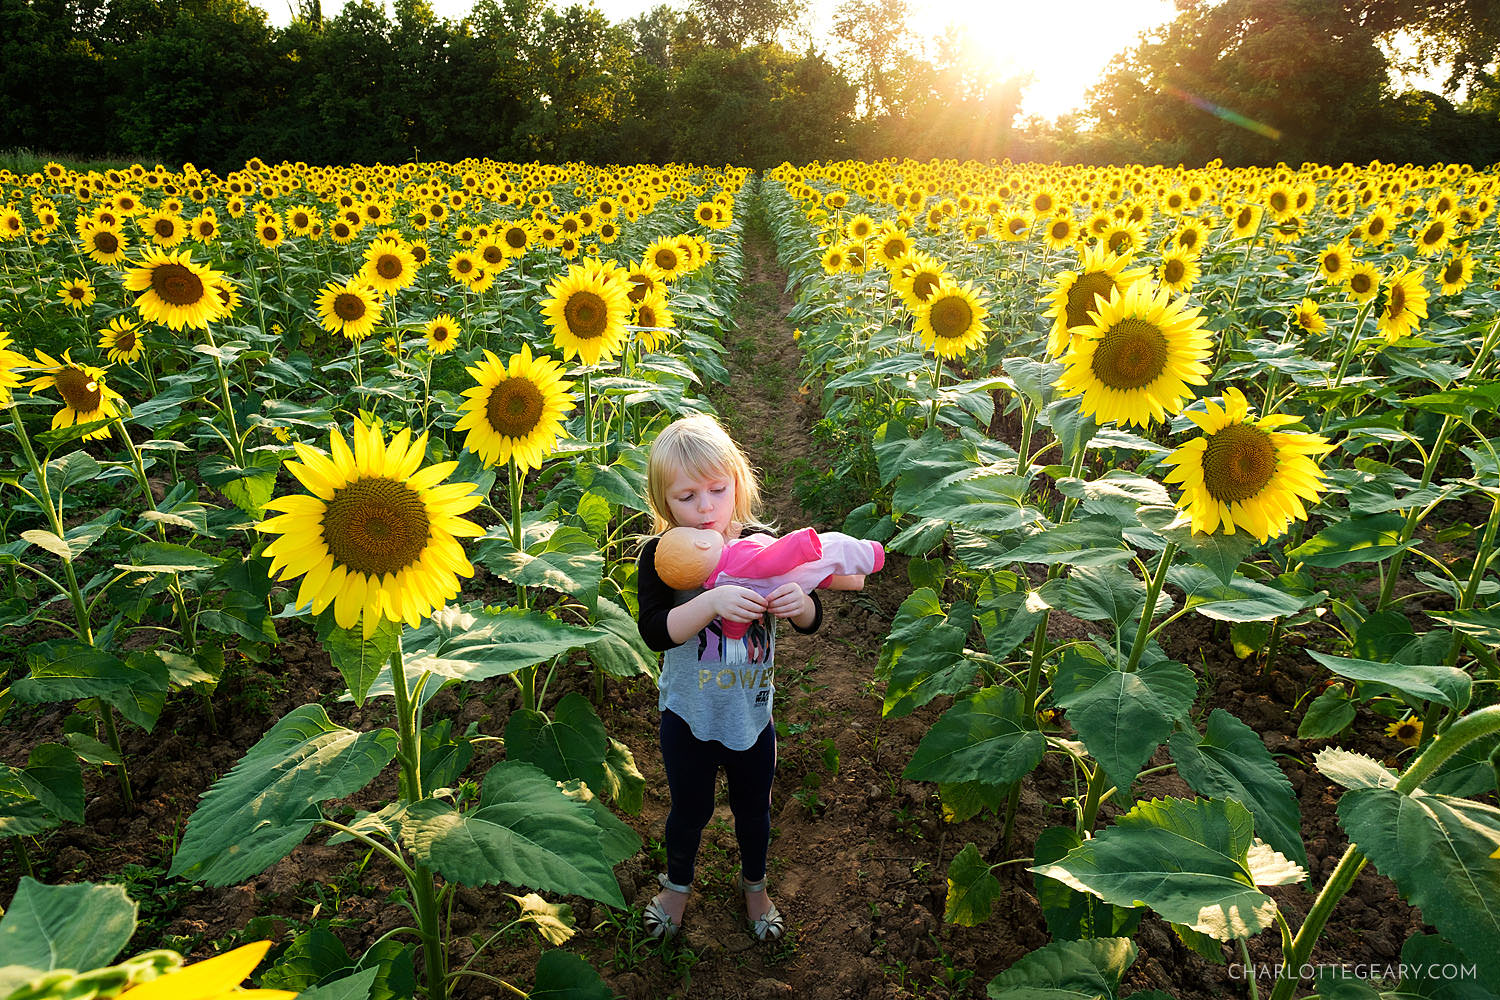 The sunflowers of Mckee-Bashers Wildlife Management Area (Poolesville, Maryland)